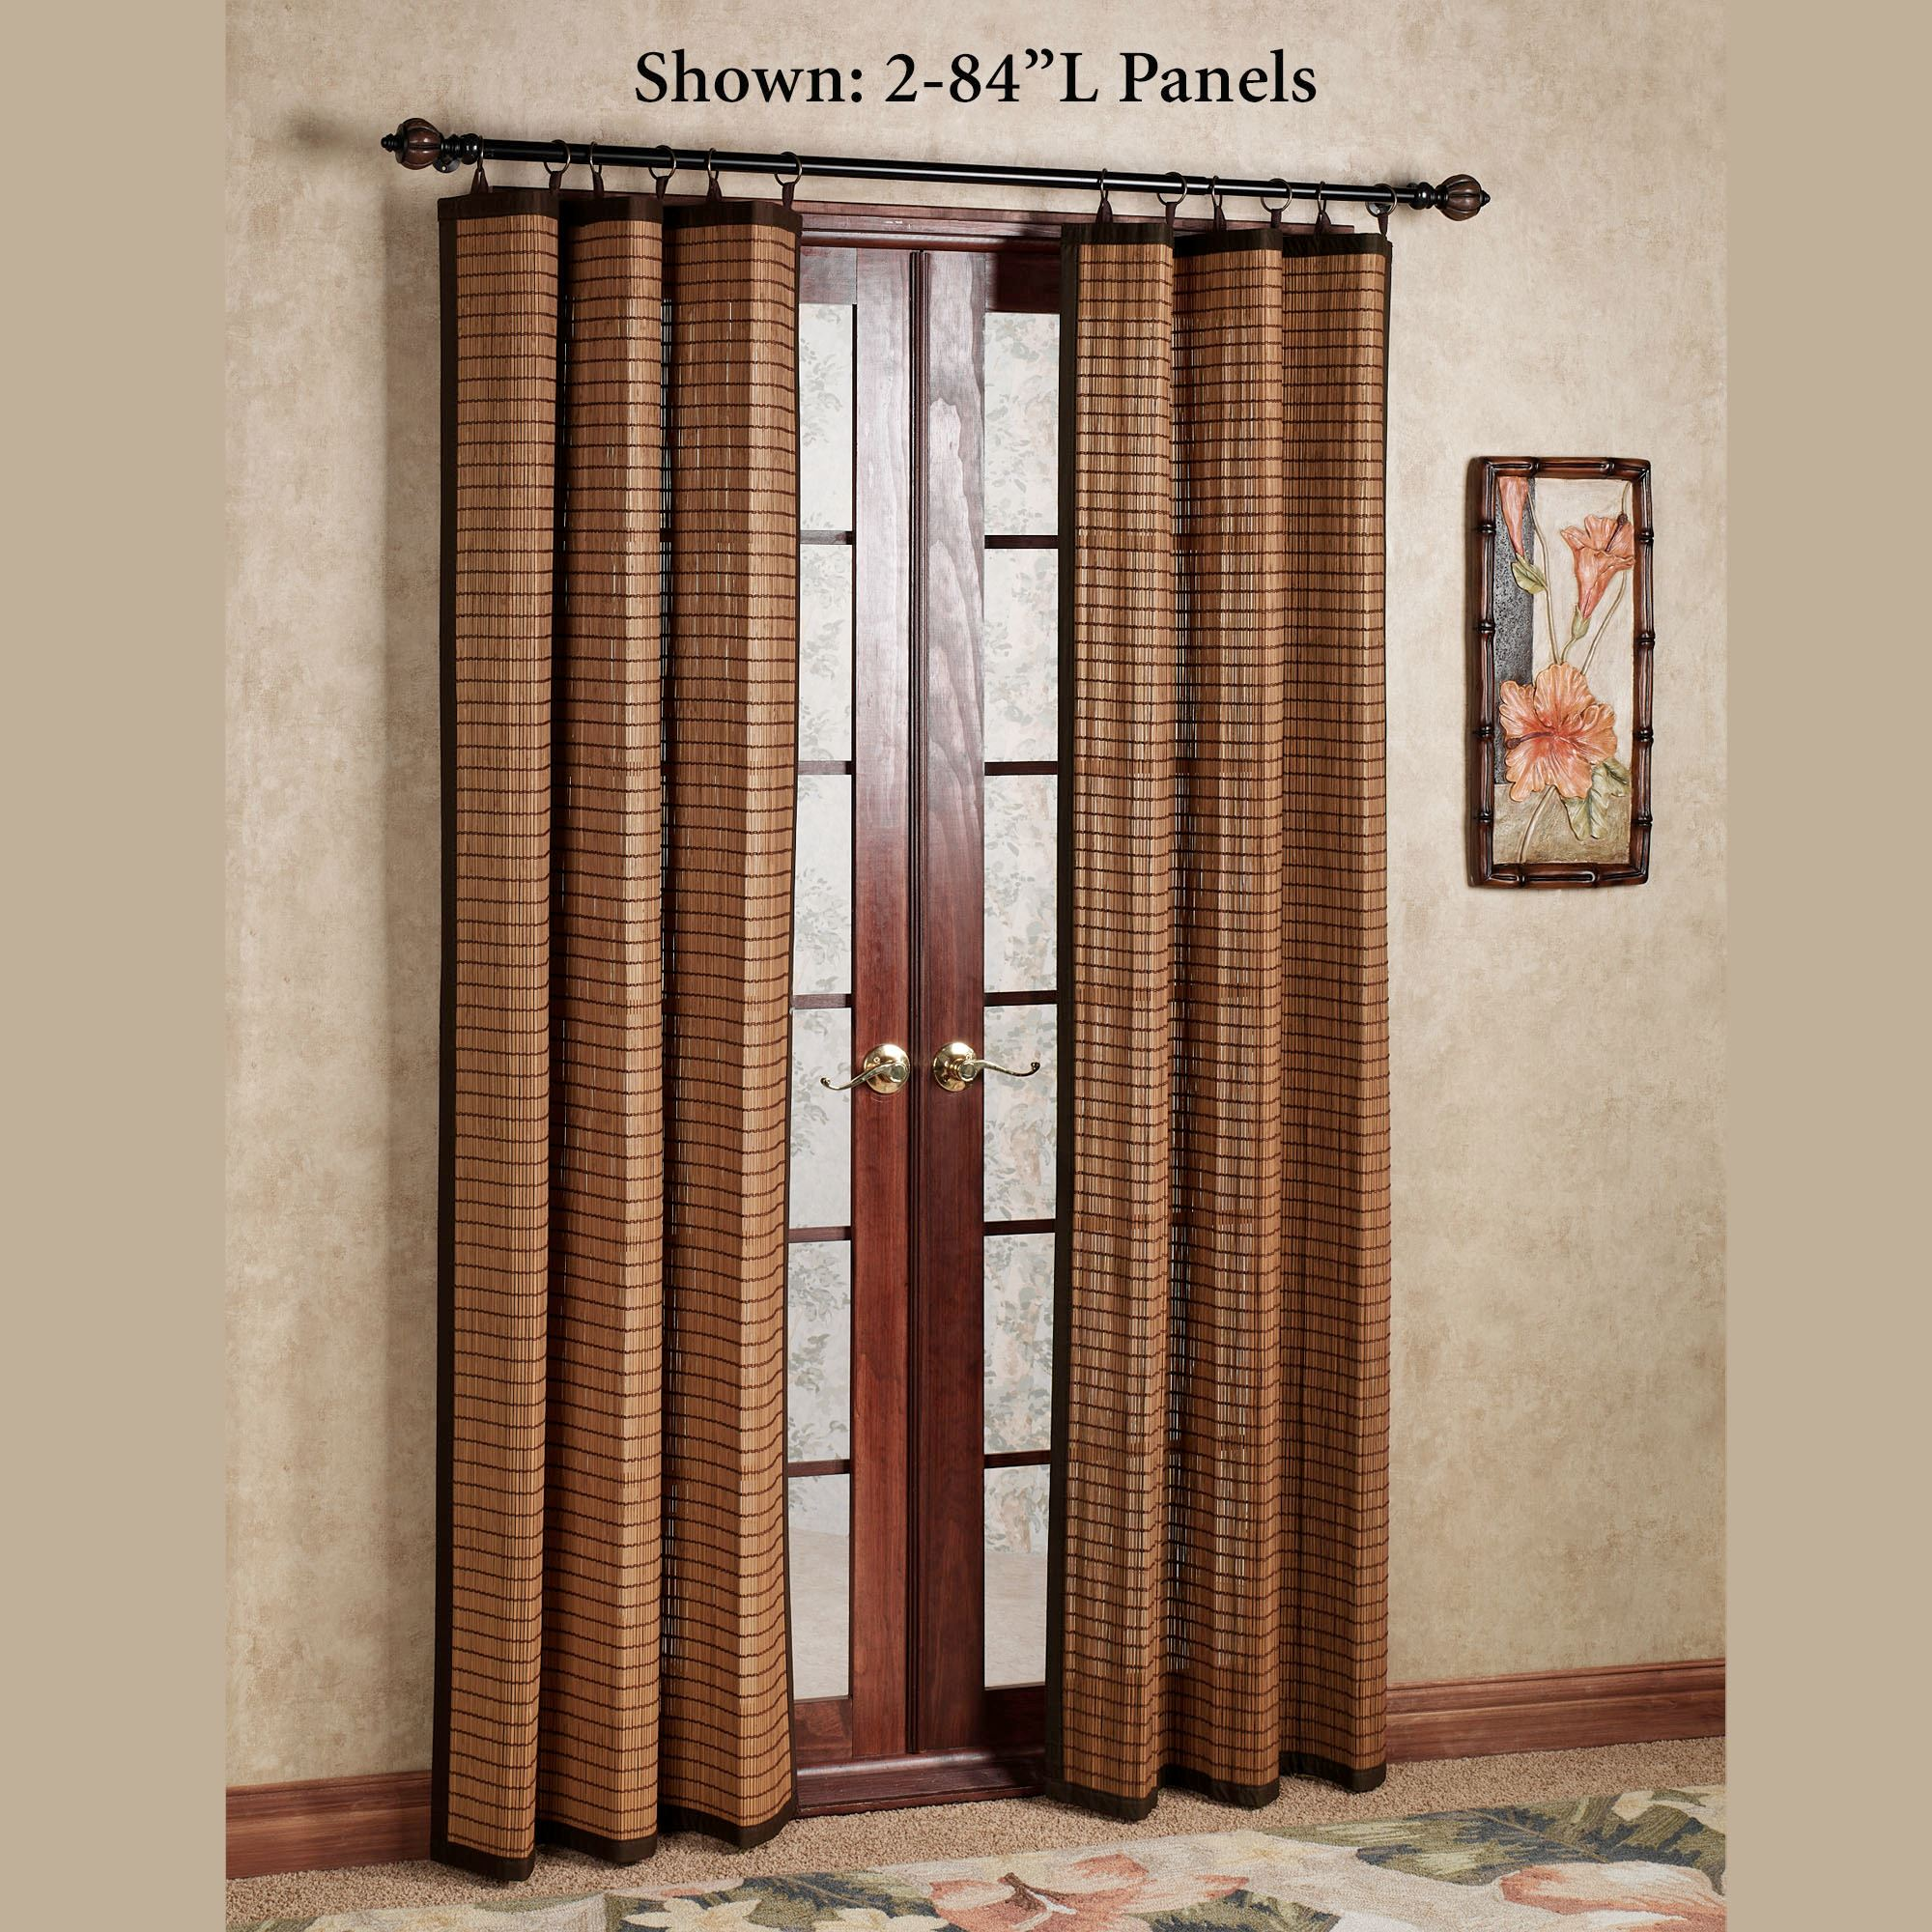 window without single roman bracket for doors to shades treatments of full rods glass blinds alternative over door center panels sliding size curtains hanging vertical amazon panel patio curtain